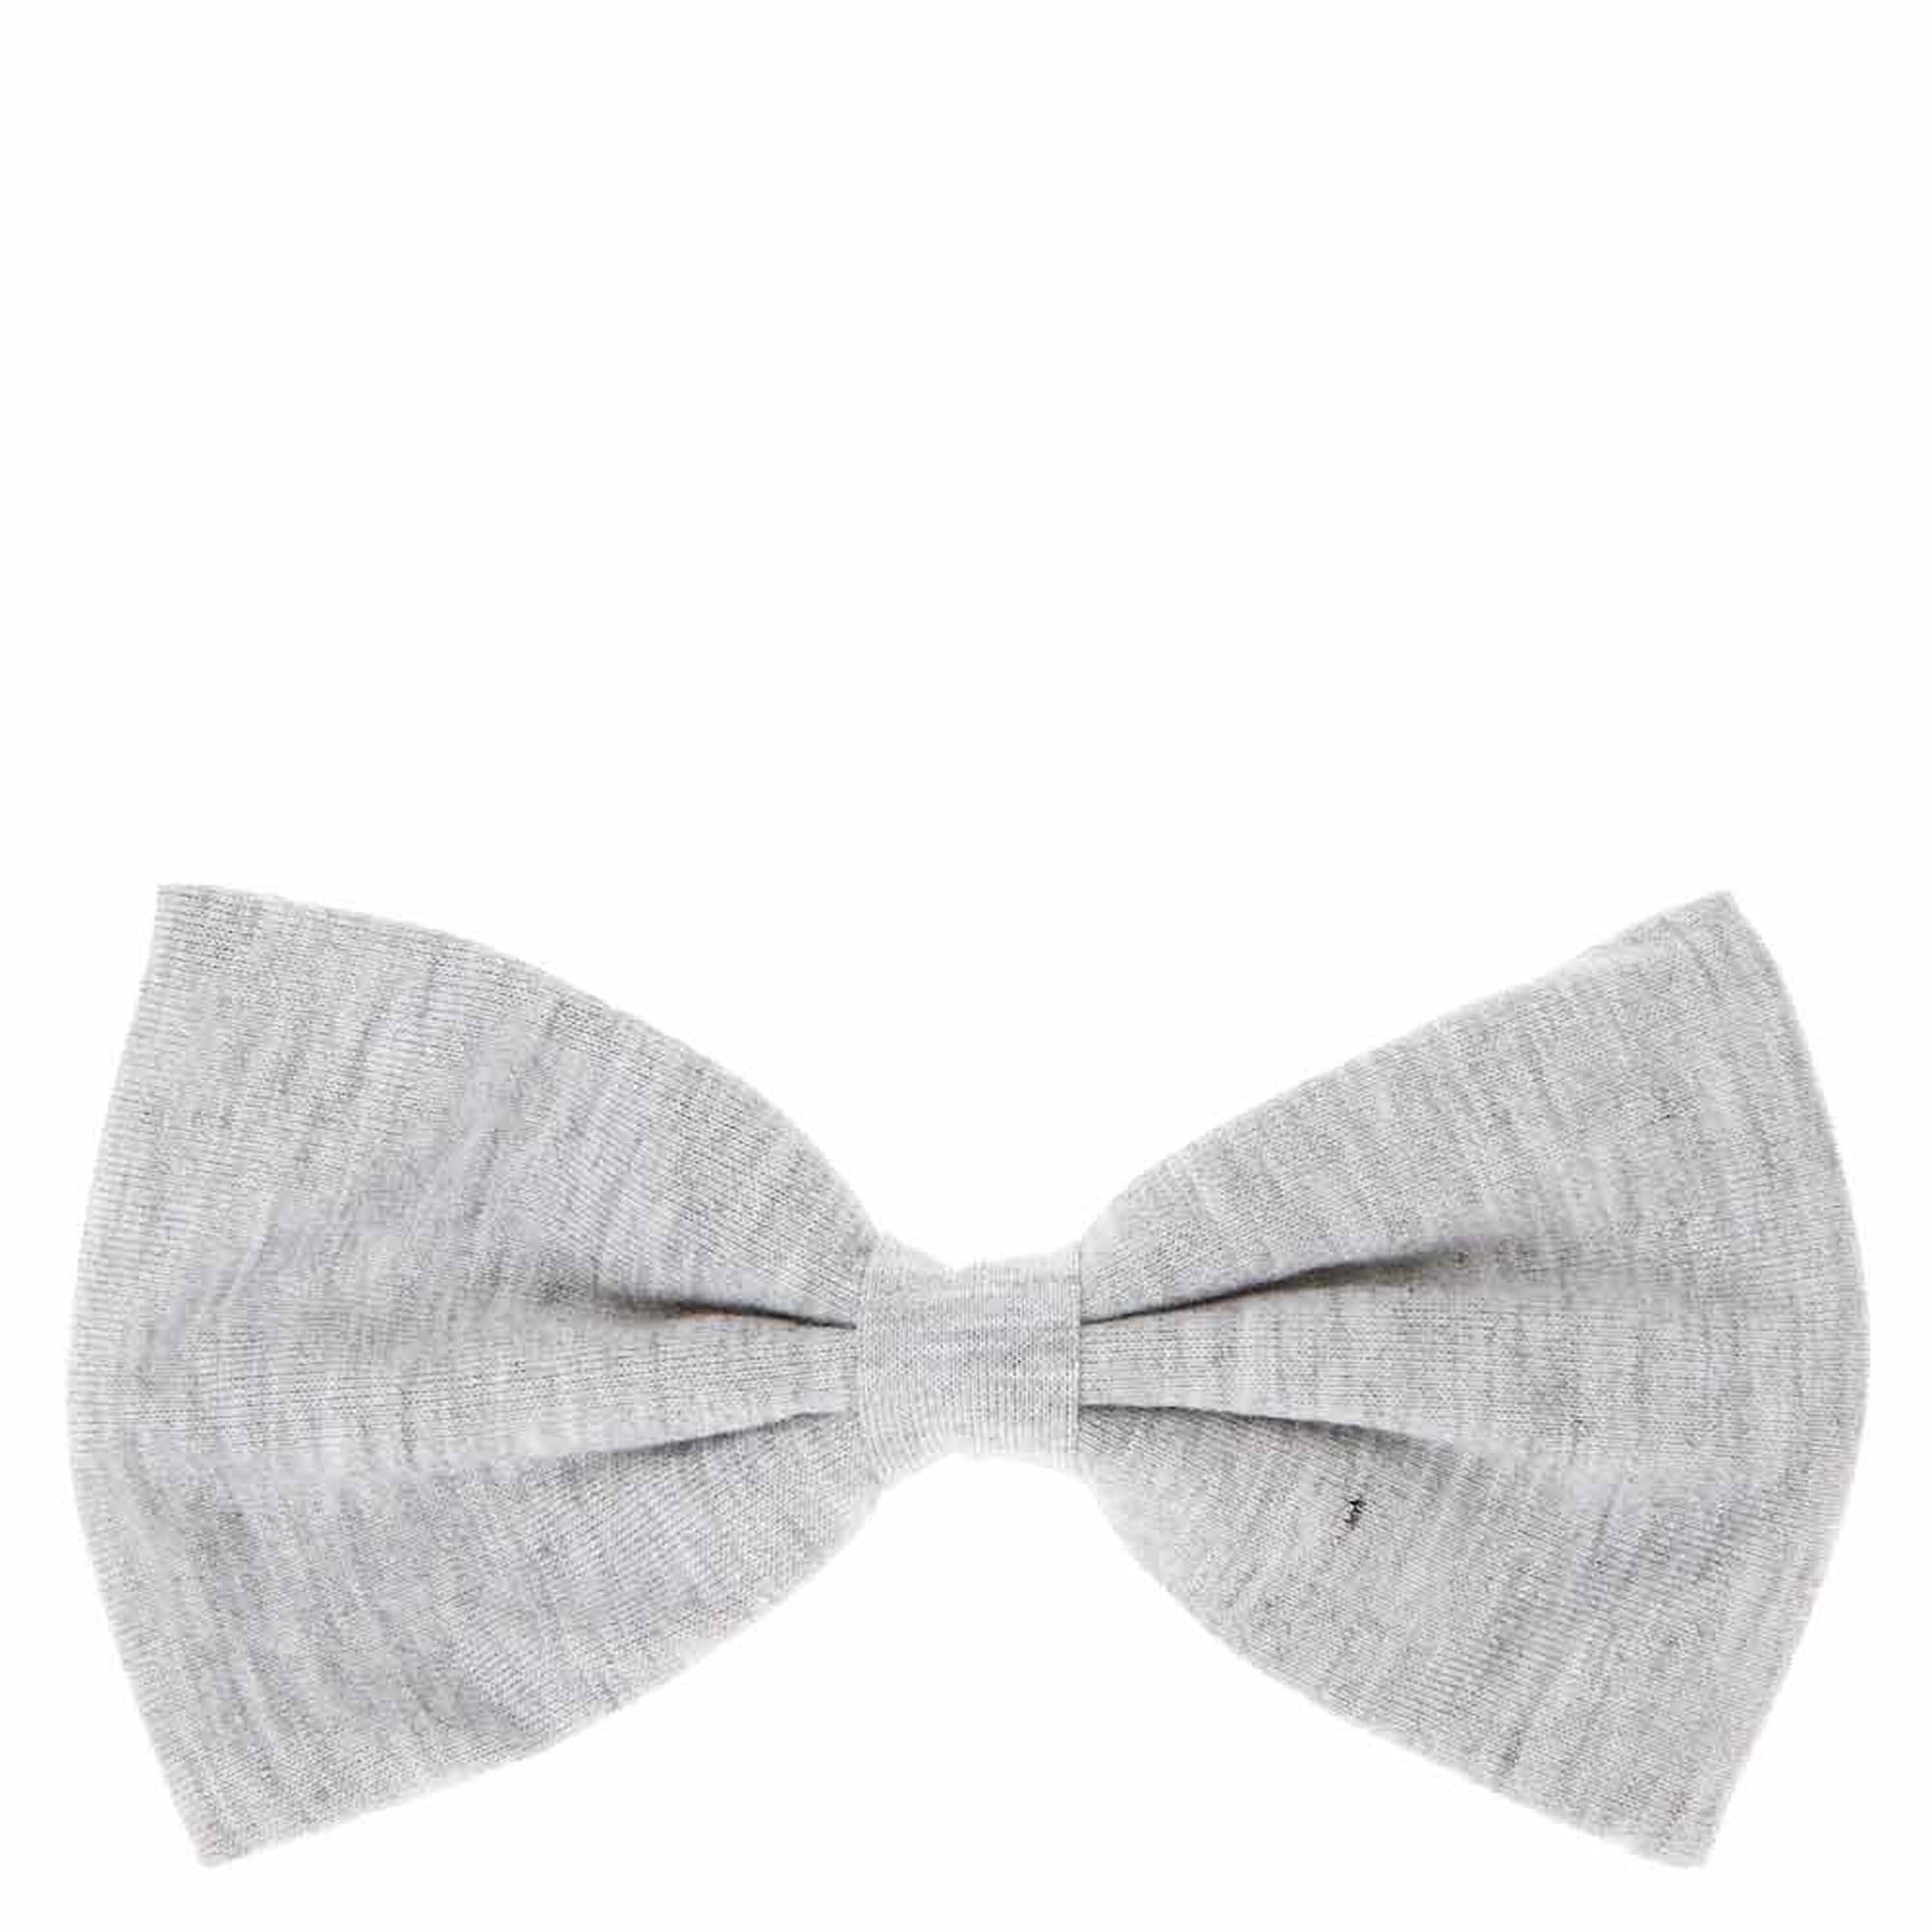 Black bow hair accessories - Gray Jersey Bow Hair Clip